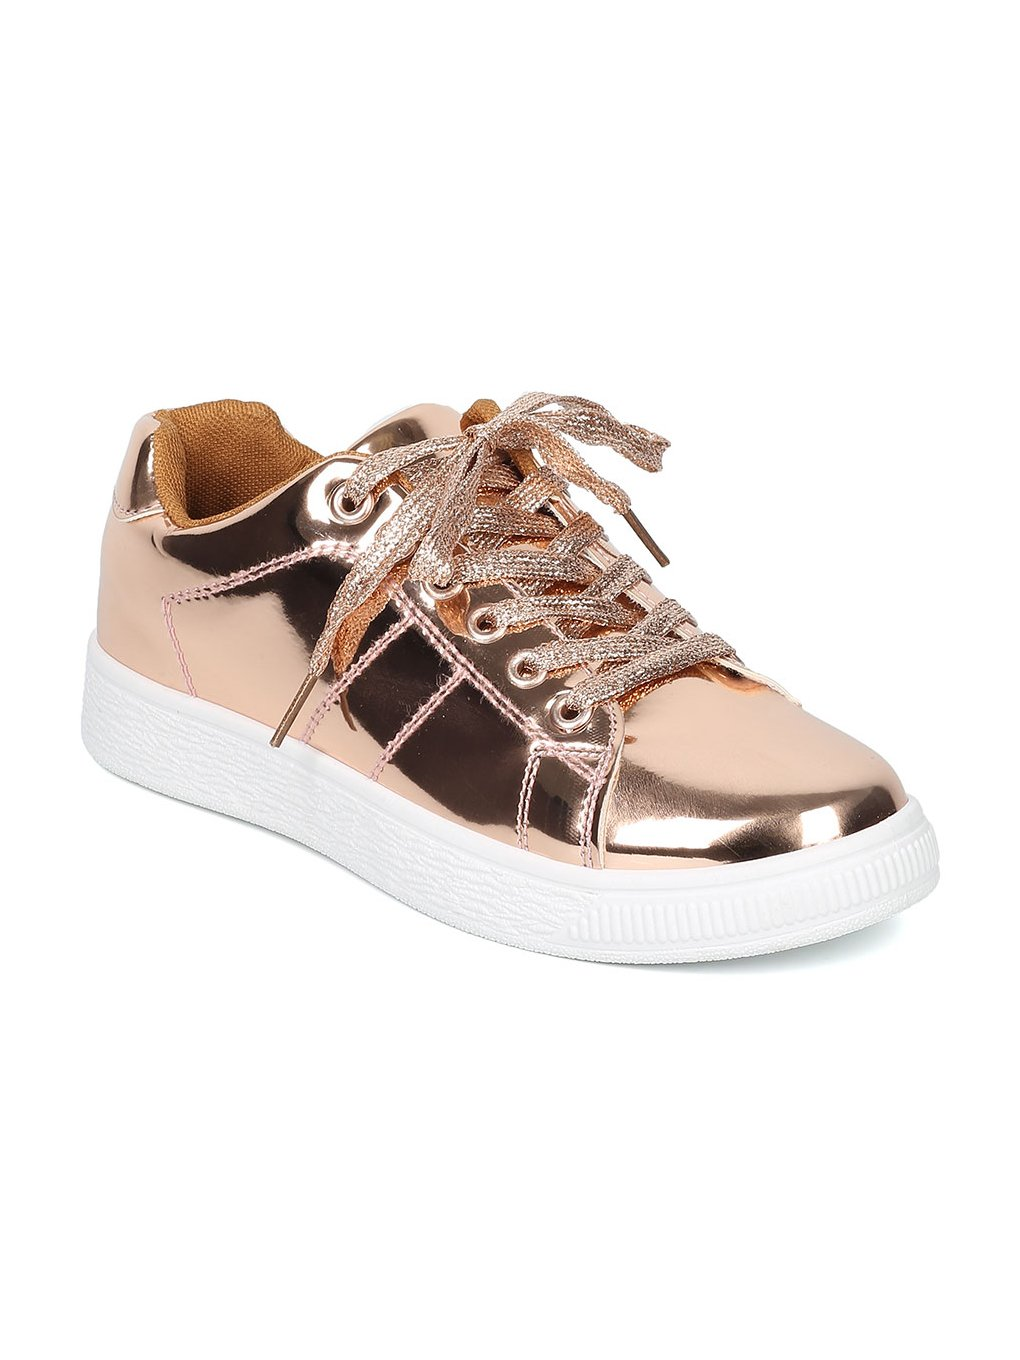 Indulge ANDI Women Mirror Metallic Lace up Low Top Sneaker HB96 B072MKW78J 5.5 M US|Rose Gold Metallic